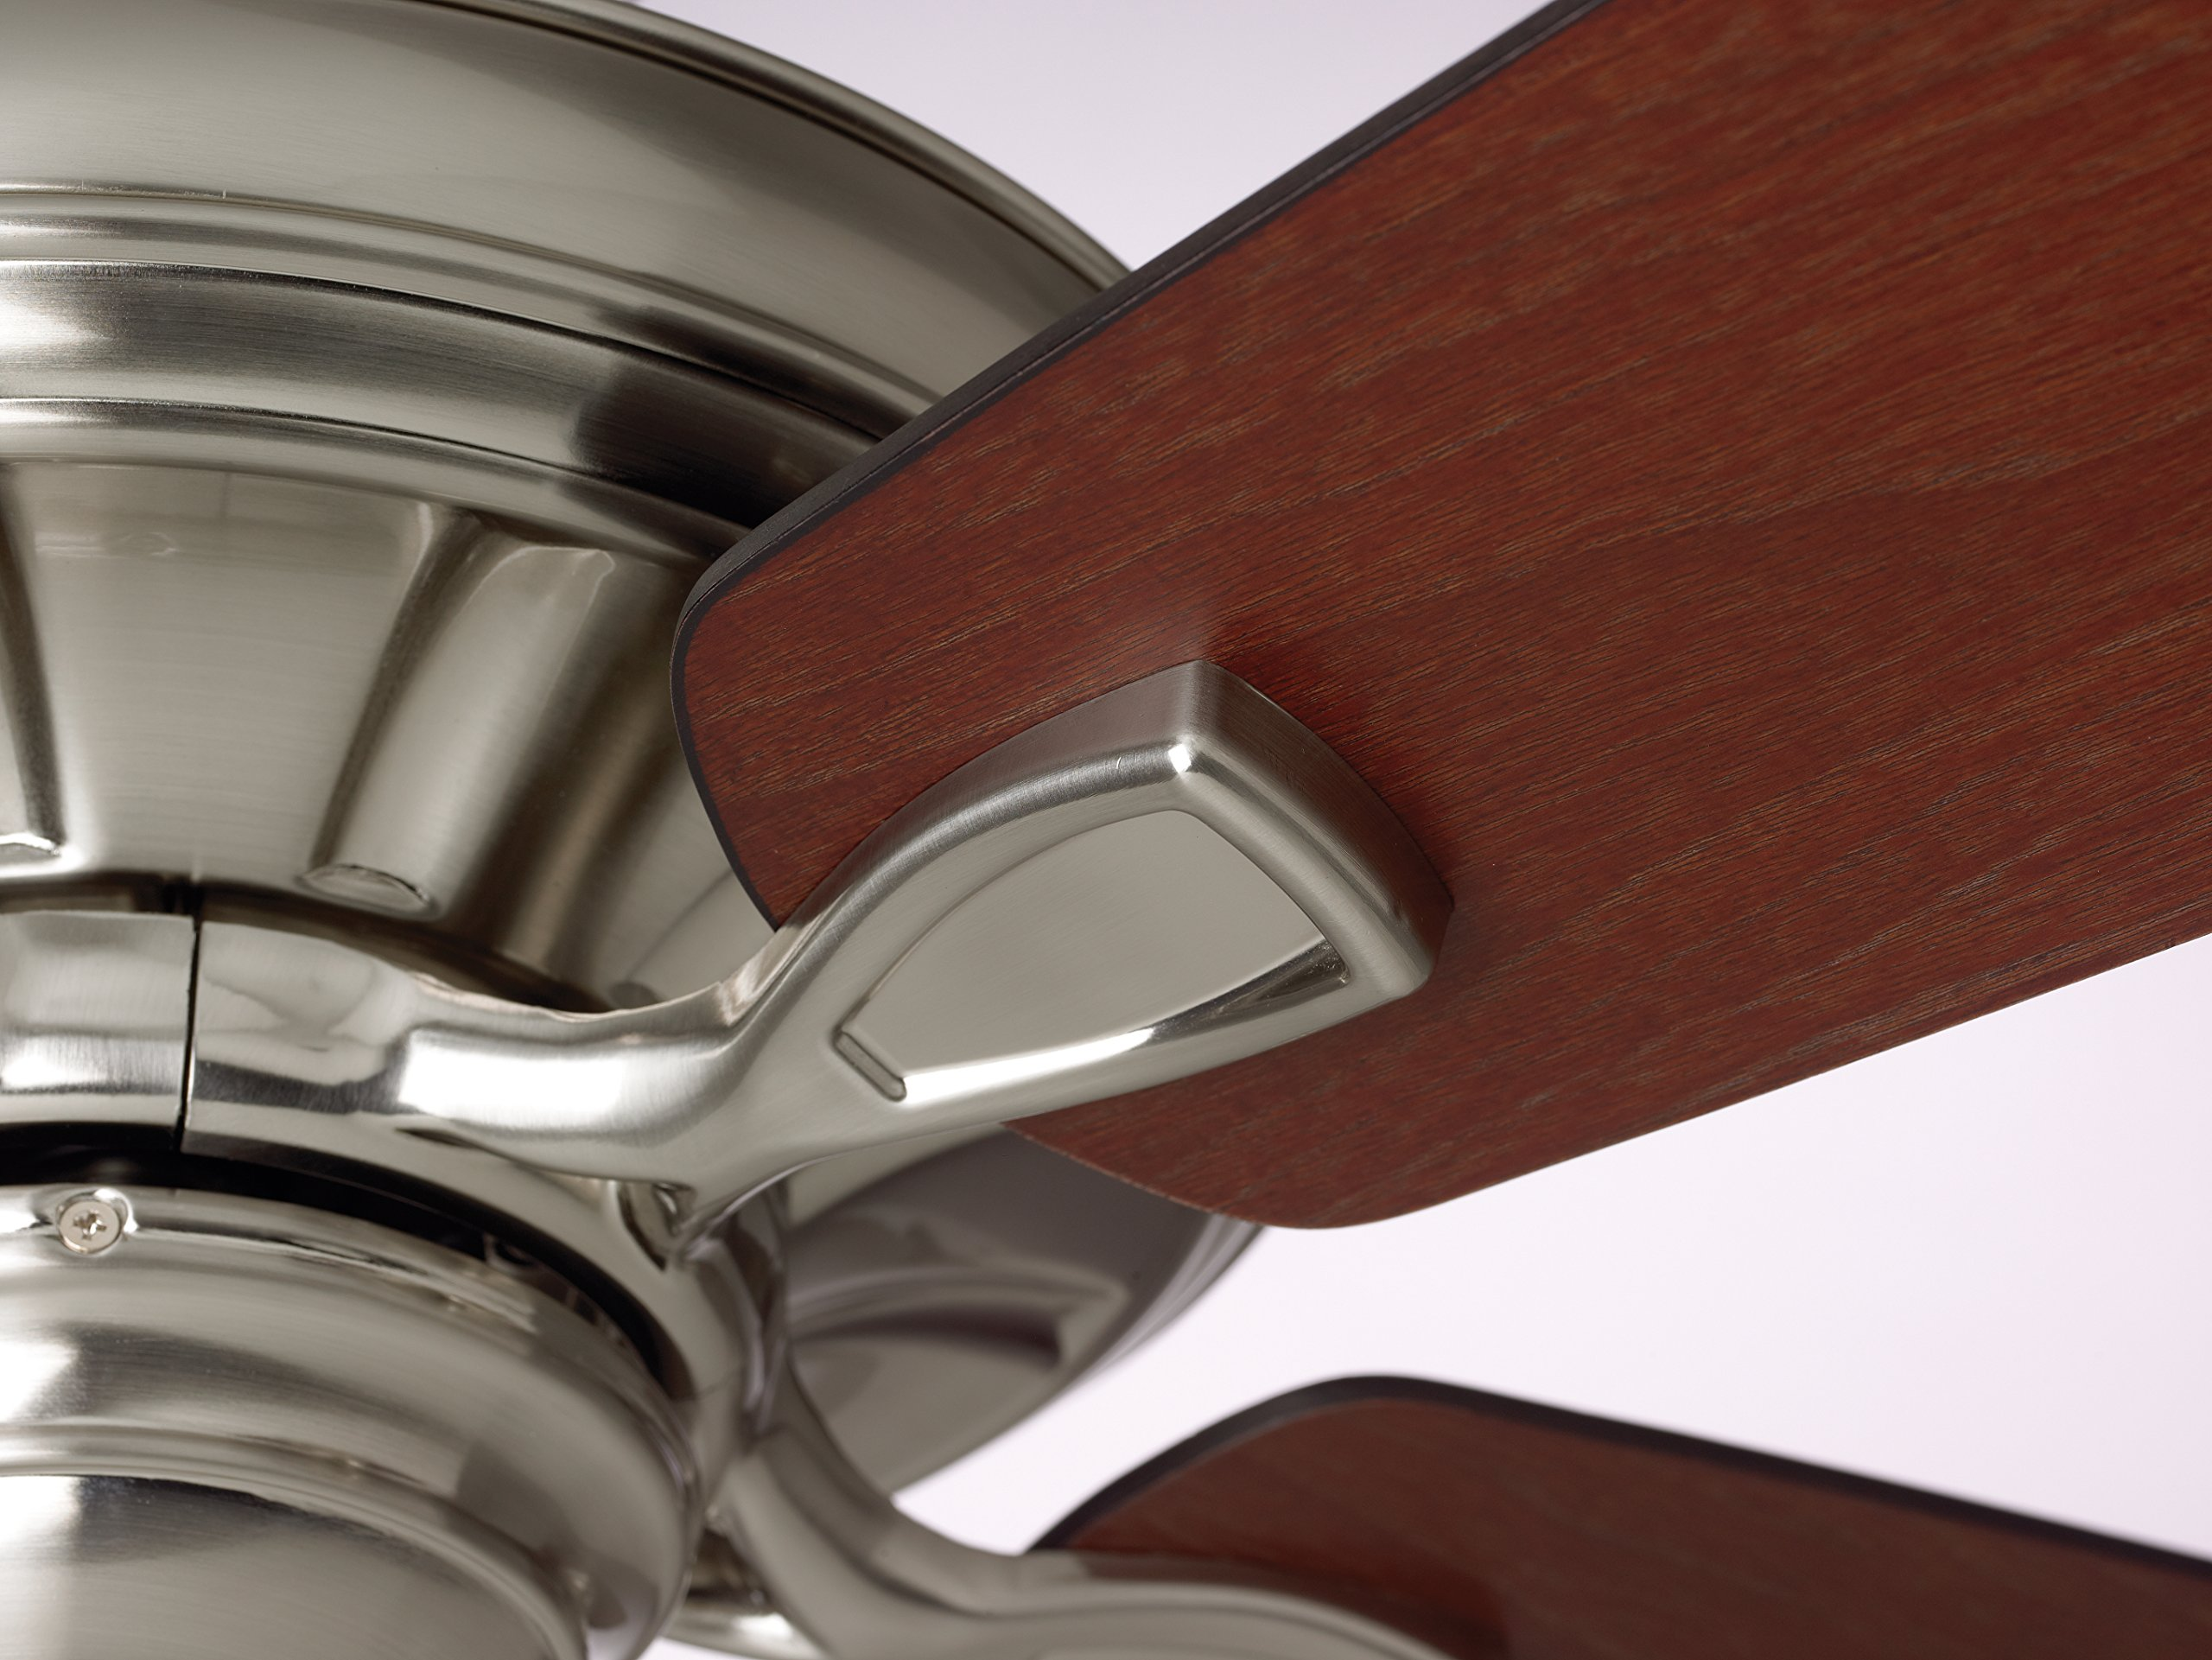 Emerson Ceiling Fans CF784BS Carrera 60 Inch Indoor Ceiling Fan